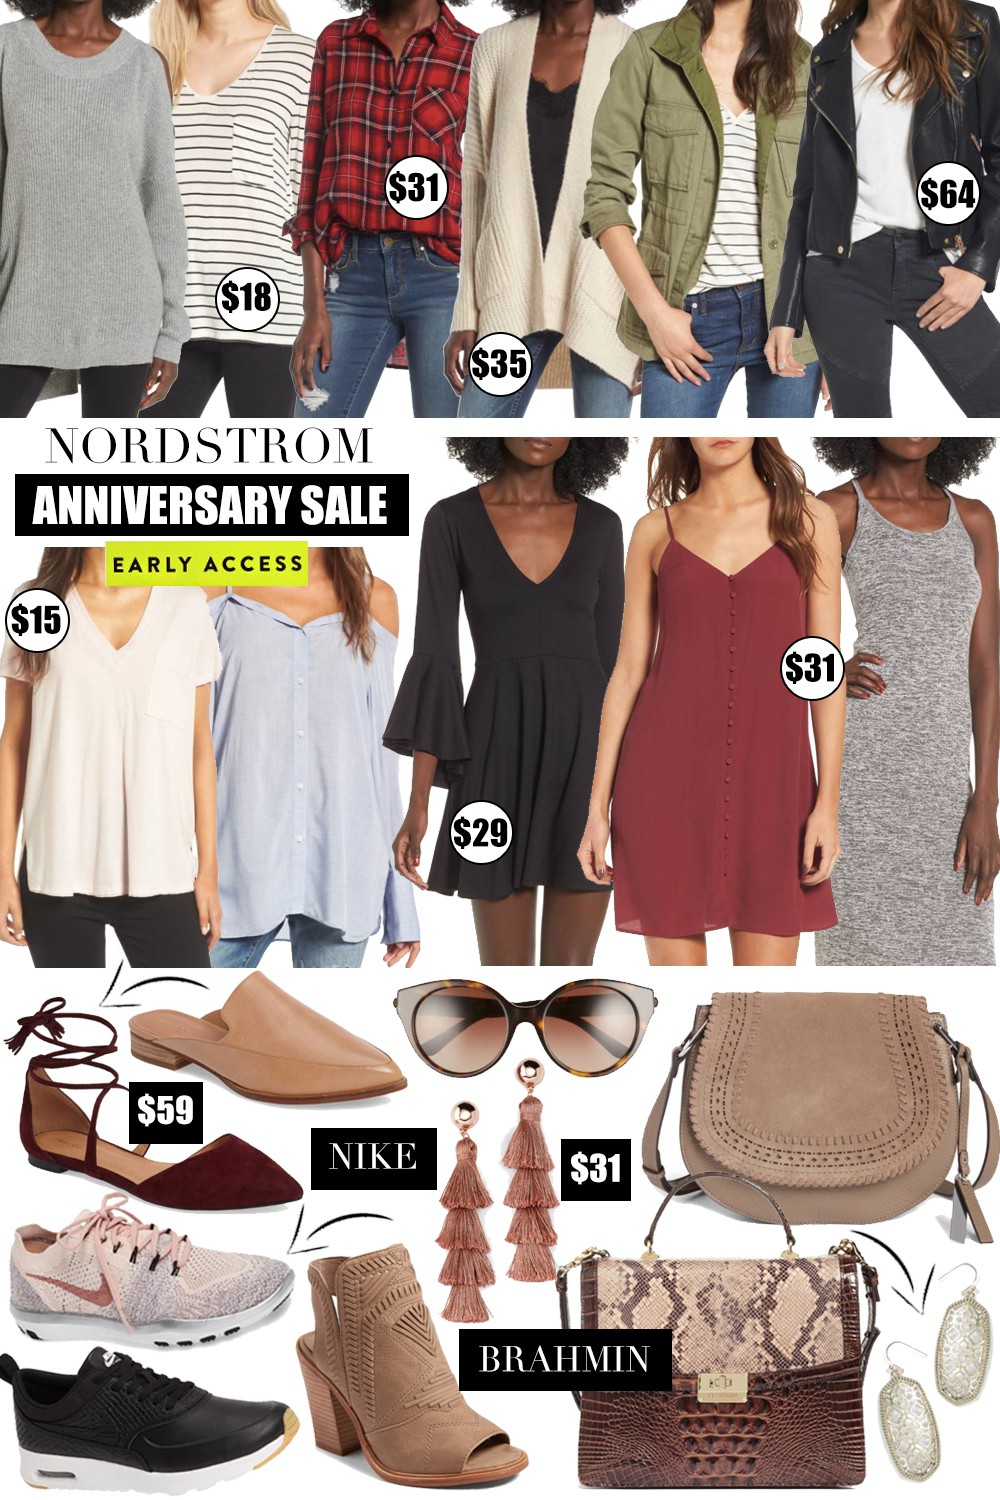 Nordstrom Anniversary Sale Early Access! - LivvyLand | Austin ...